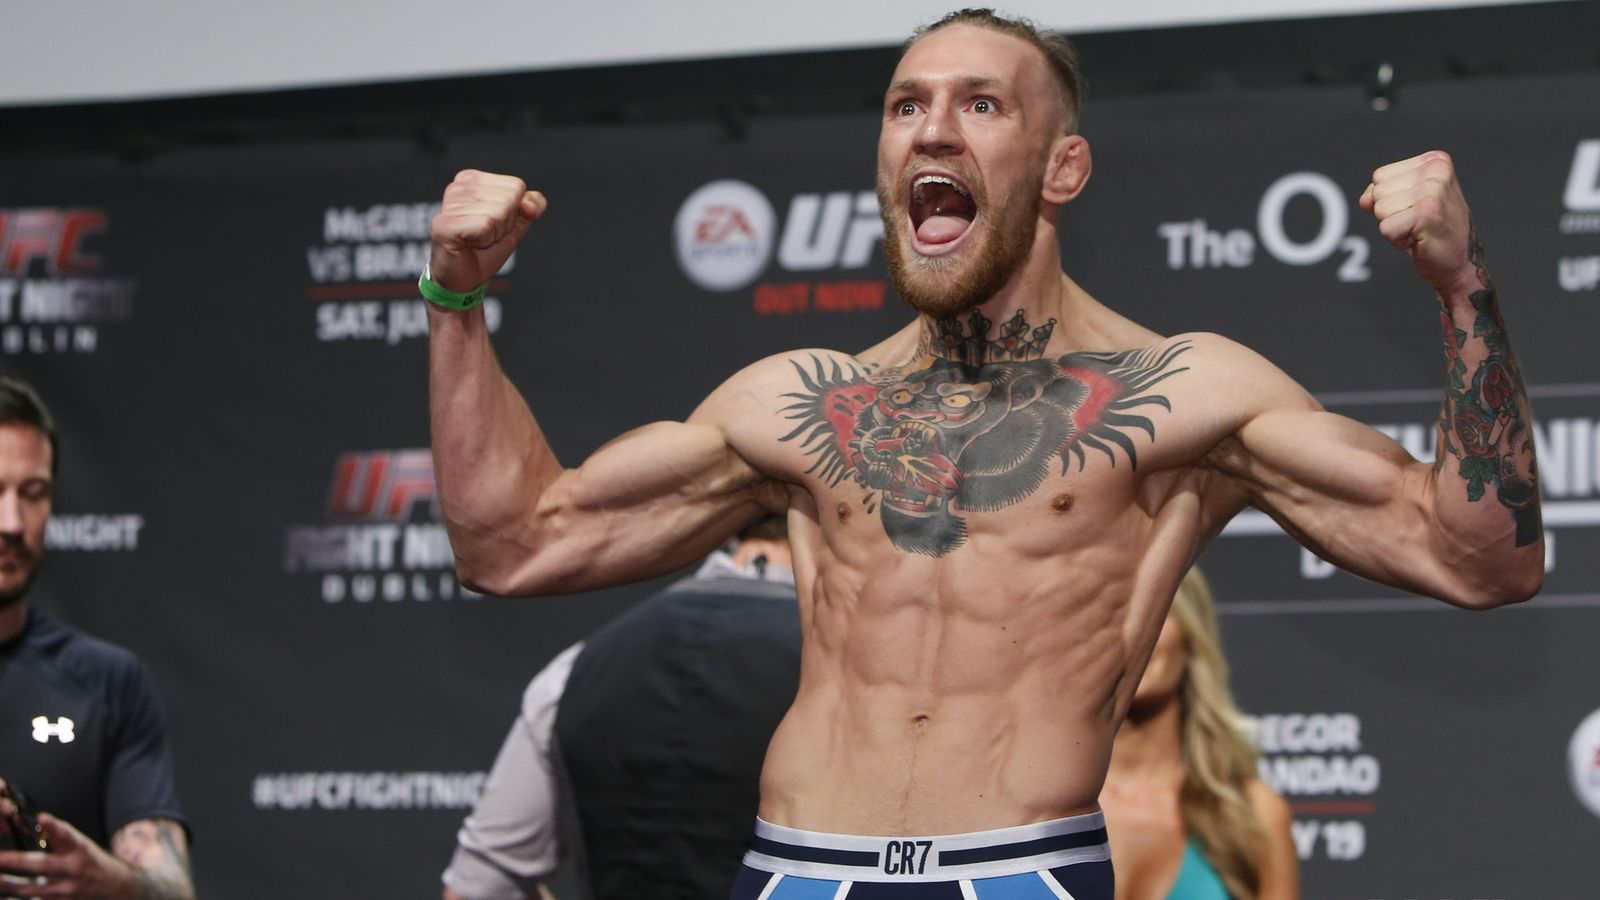 McGregor's First Title Defense To Be In Croke Park